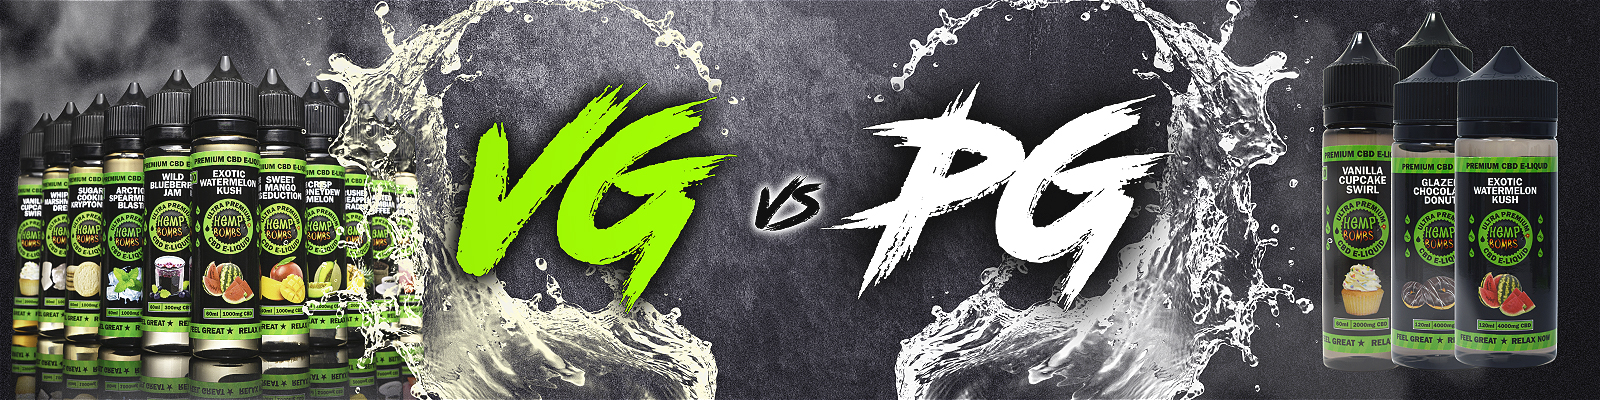 VG and PG Banner Image | VG vs. PG